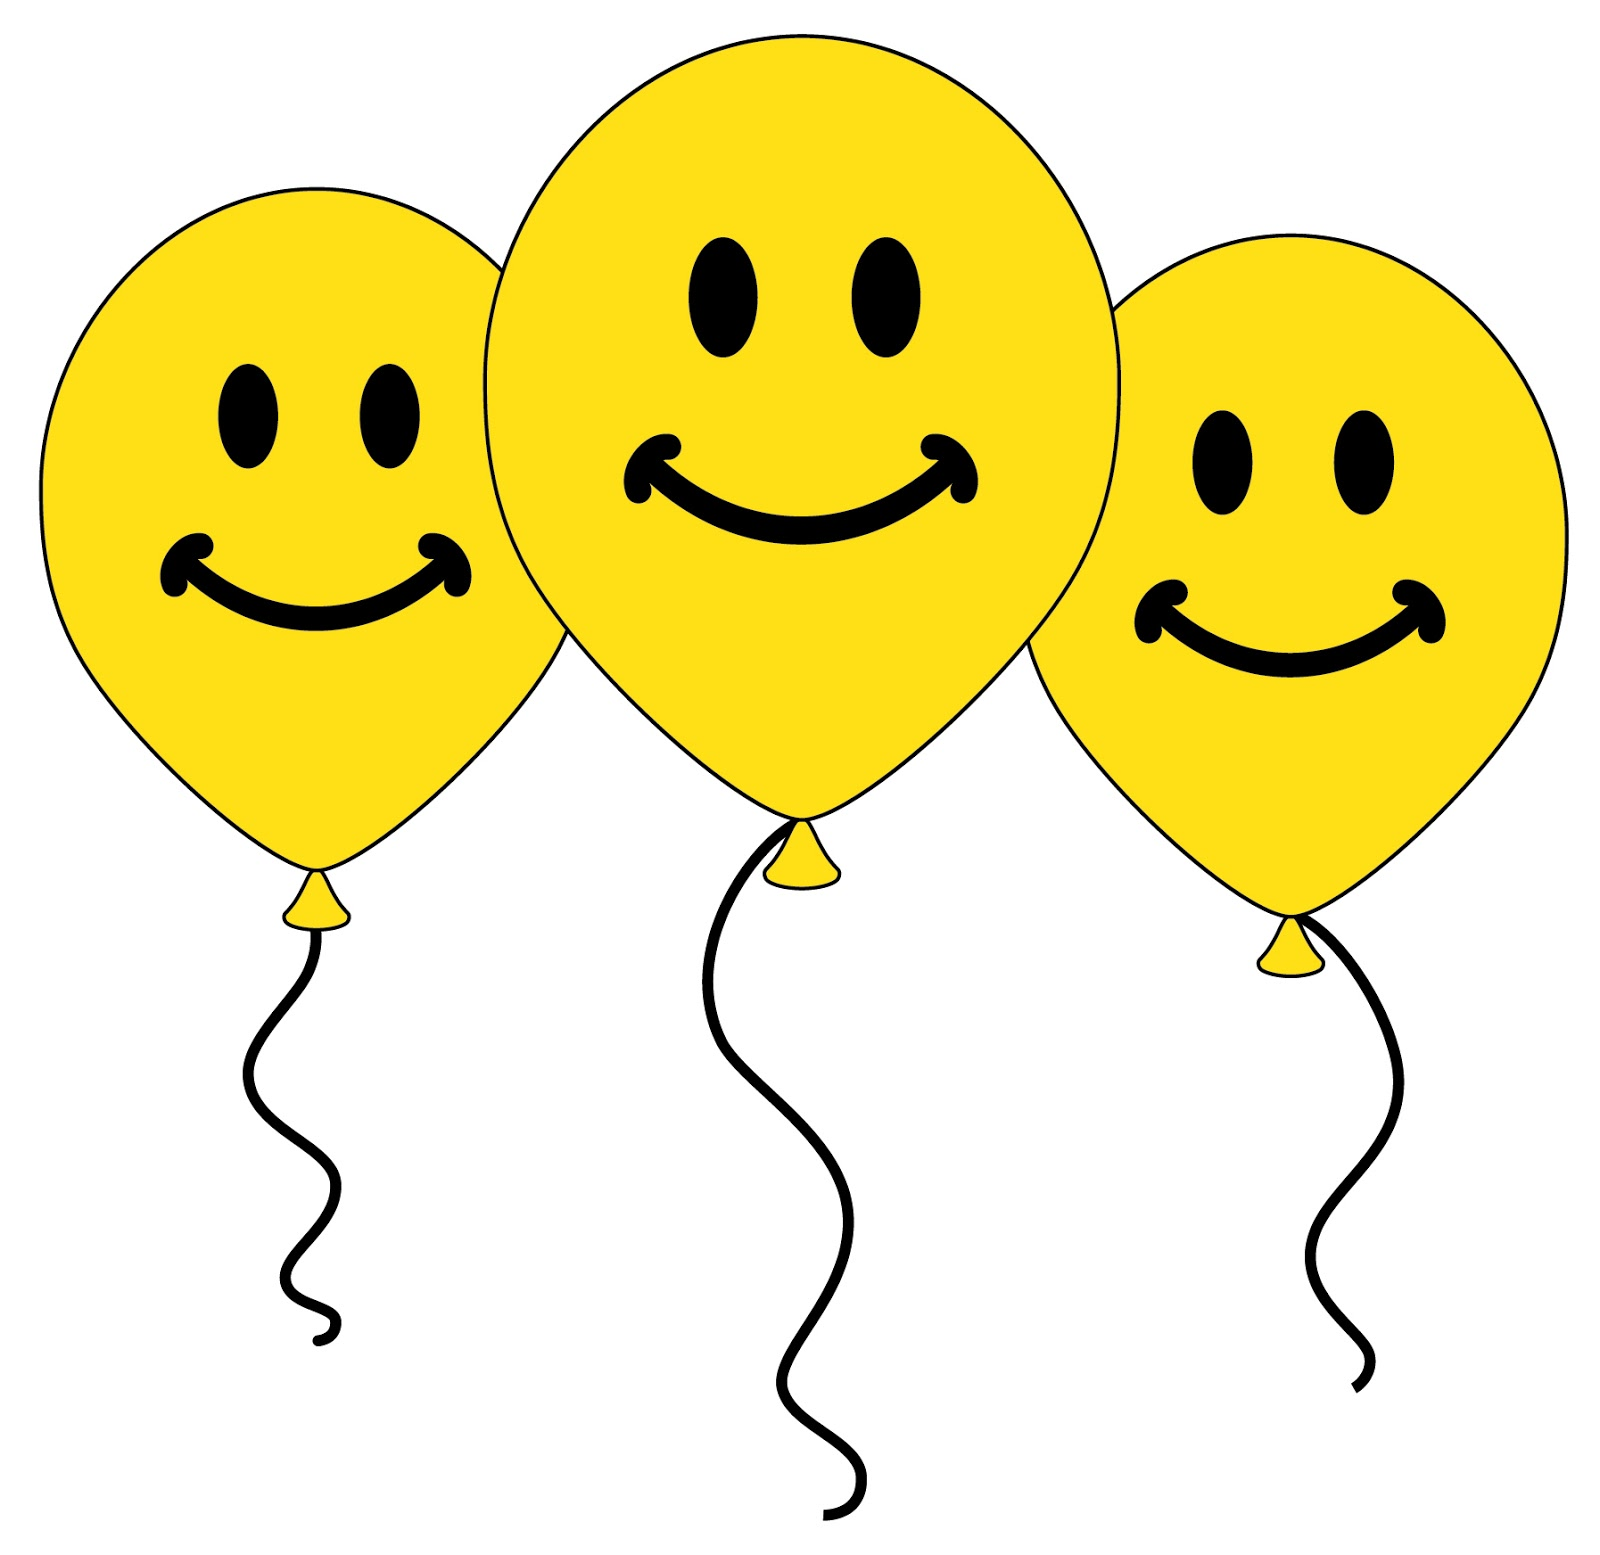 Happy face smiley face happy clip art that can copy and paste.